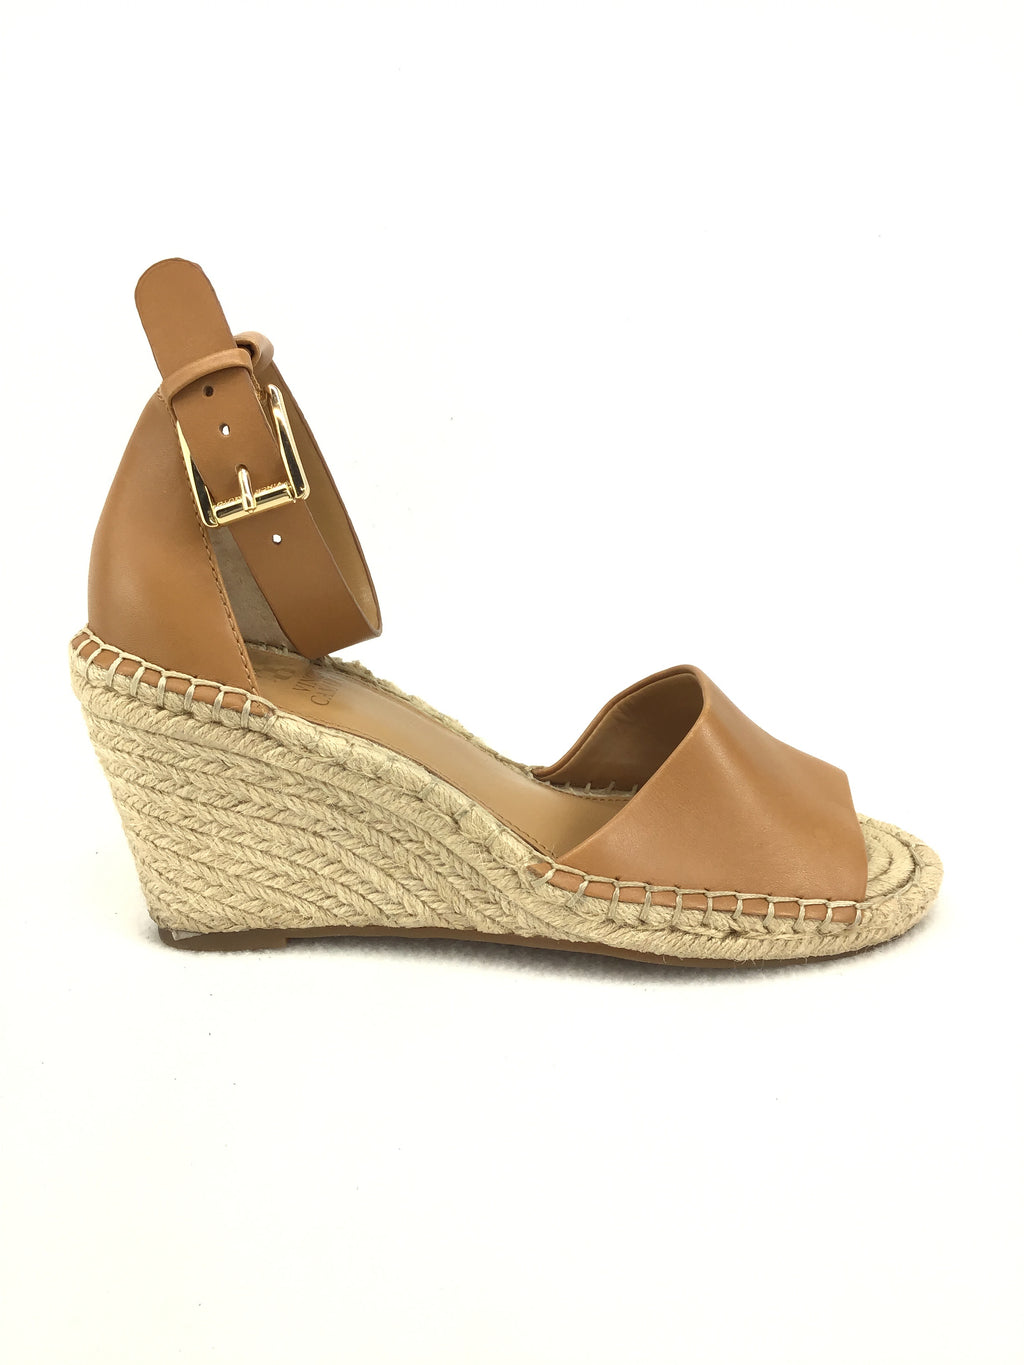 Vince Camuto Leera Espadrille Wedges Size 8M